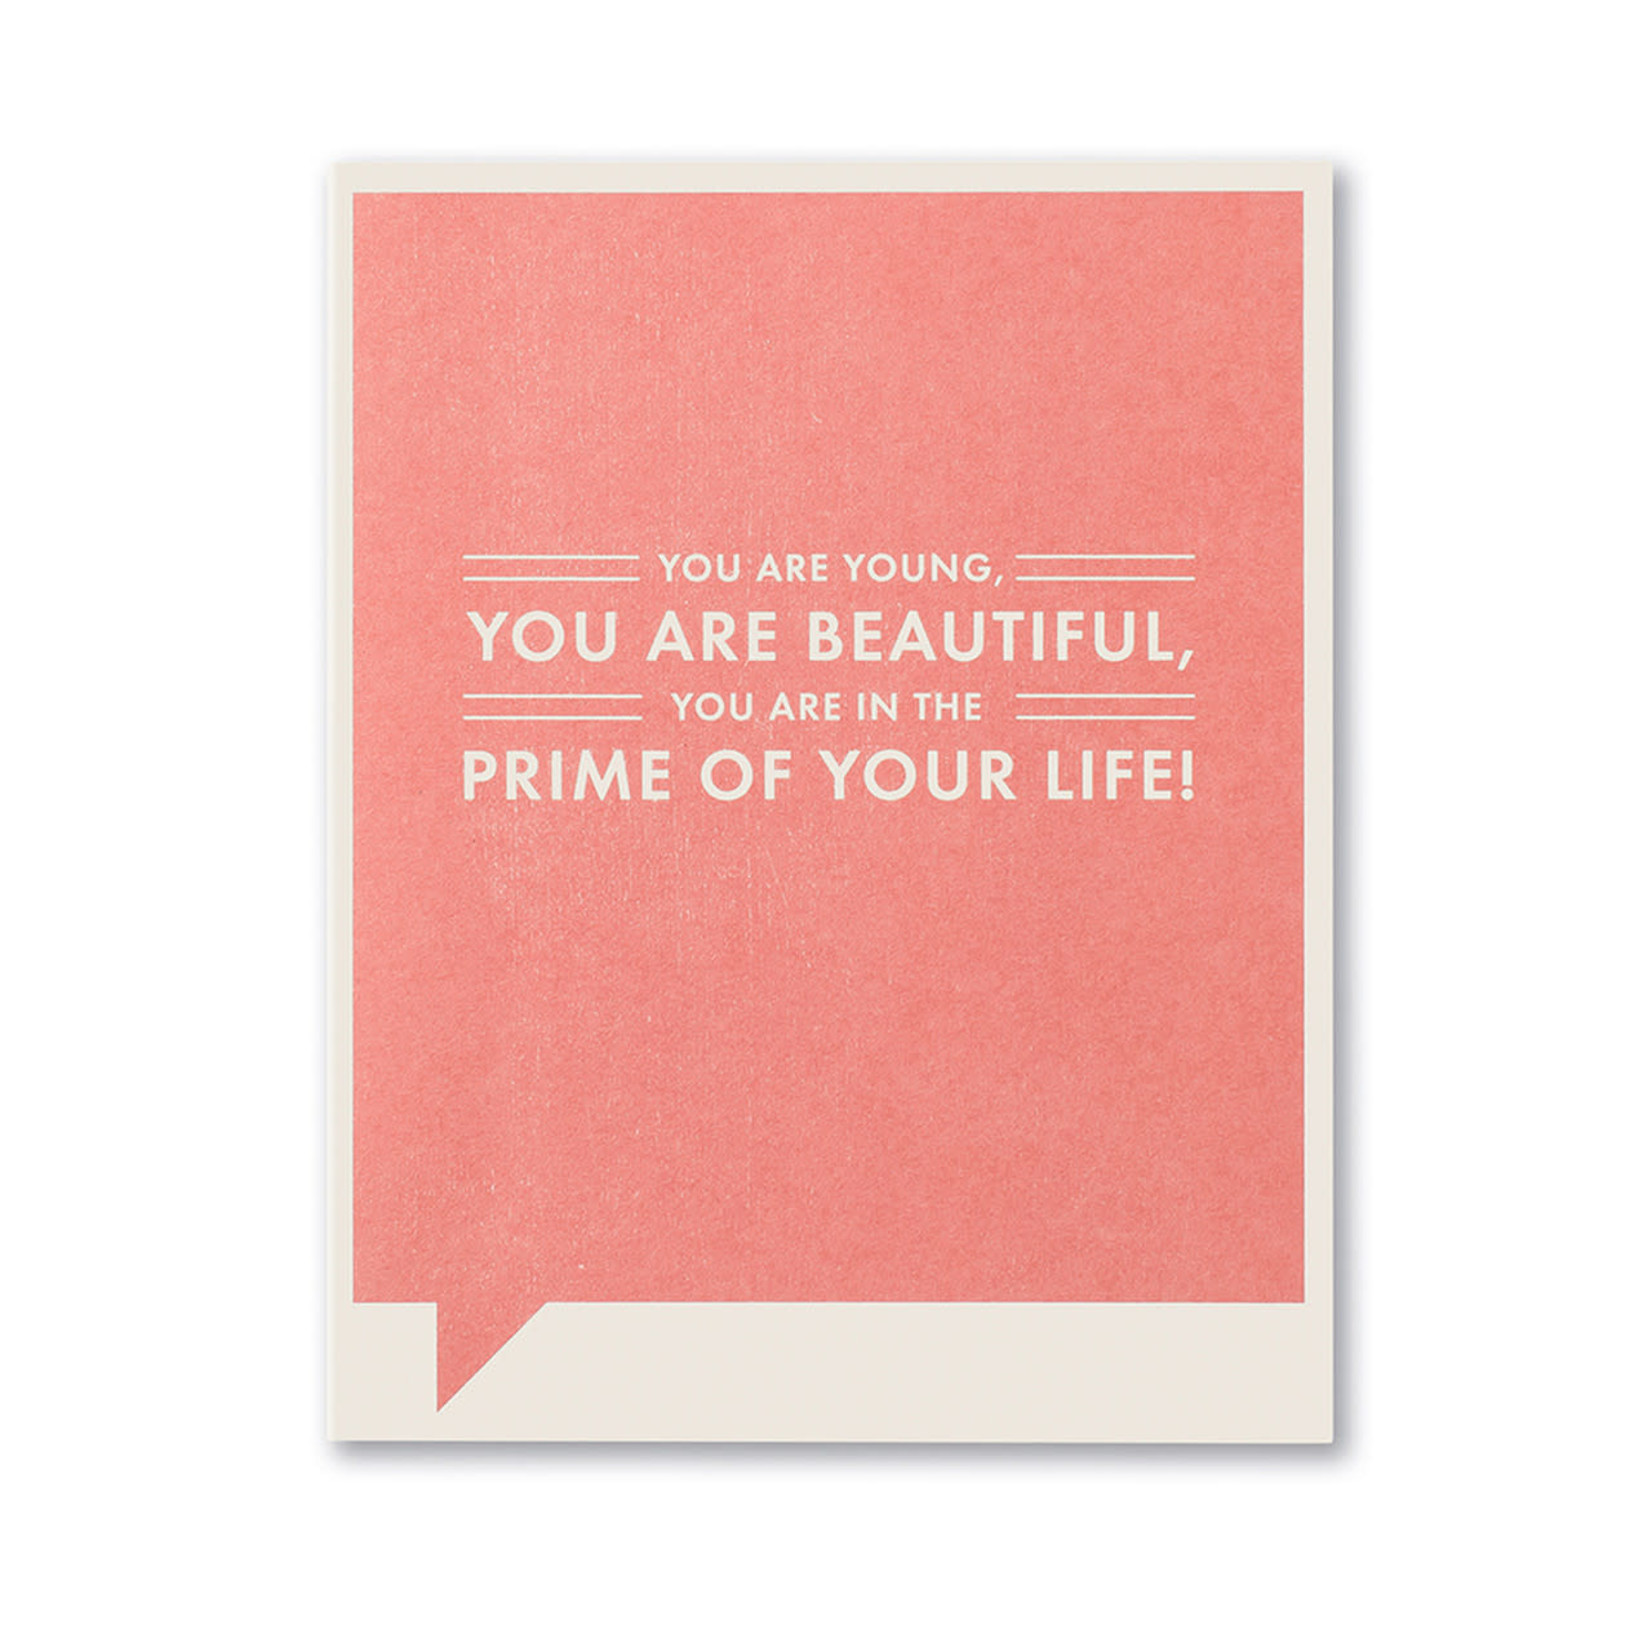 YOU ARE YOUNG, YOU ARE BEAUTIFUL CARD